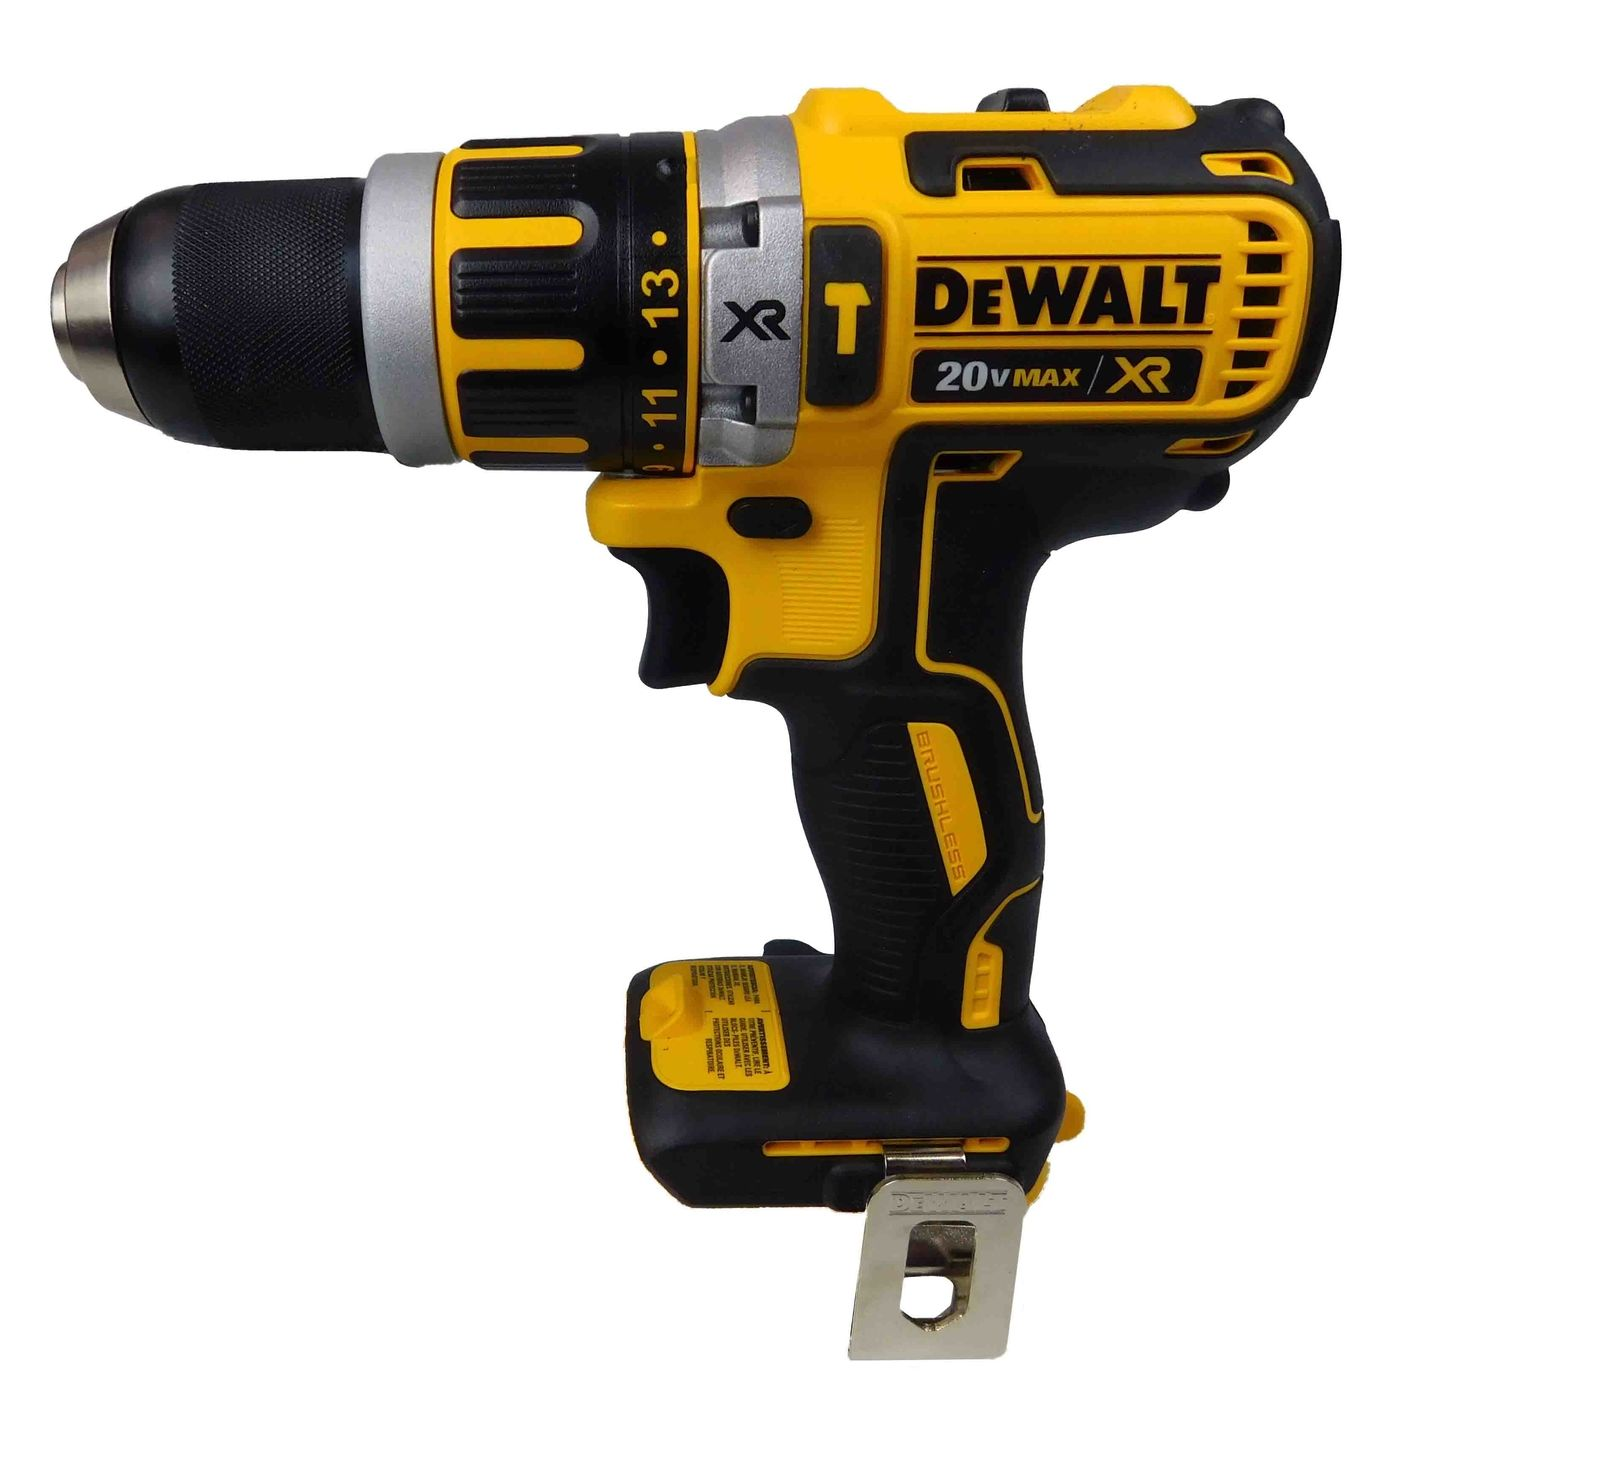 Dewalt-DCD796B-20V-Brushless-Hammer-Drill-DCB204-4-Ah-Battery-Pack-image-2